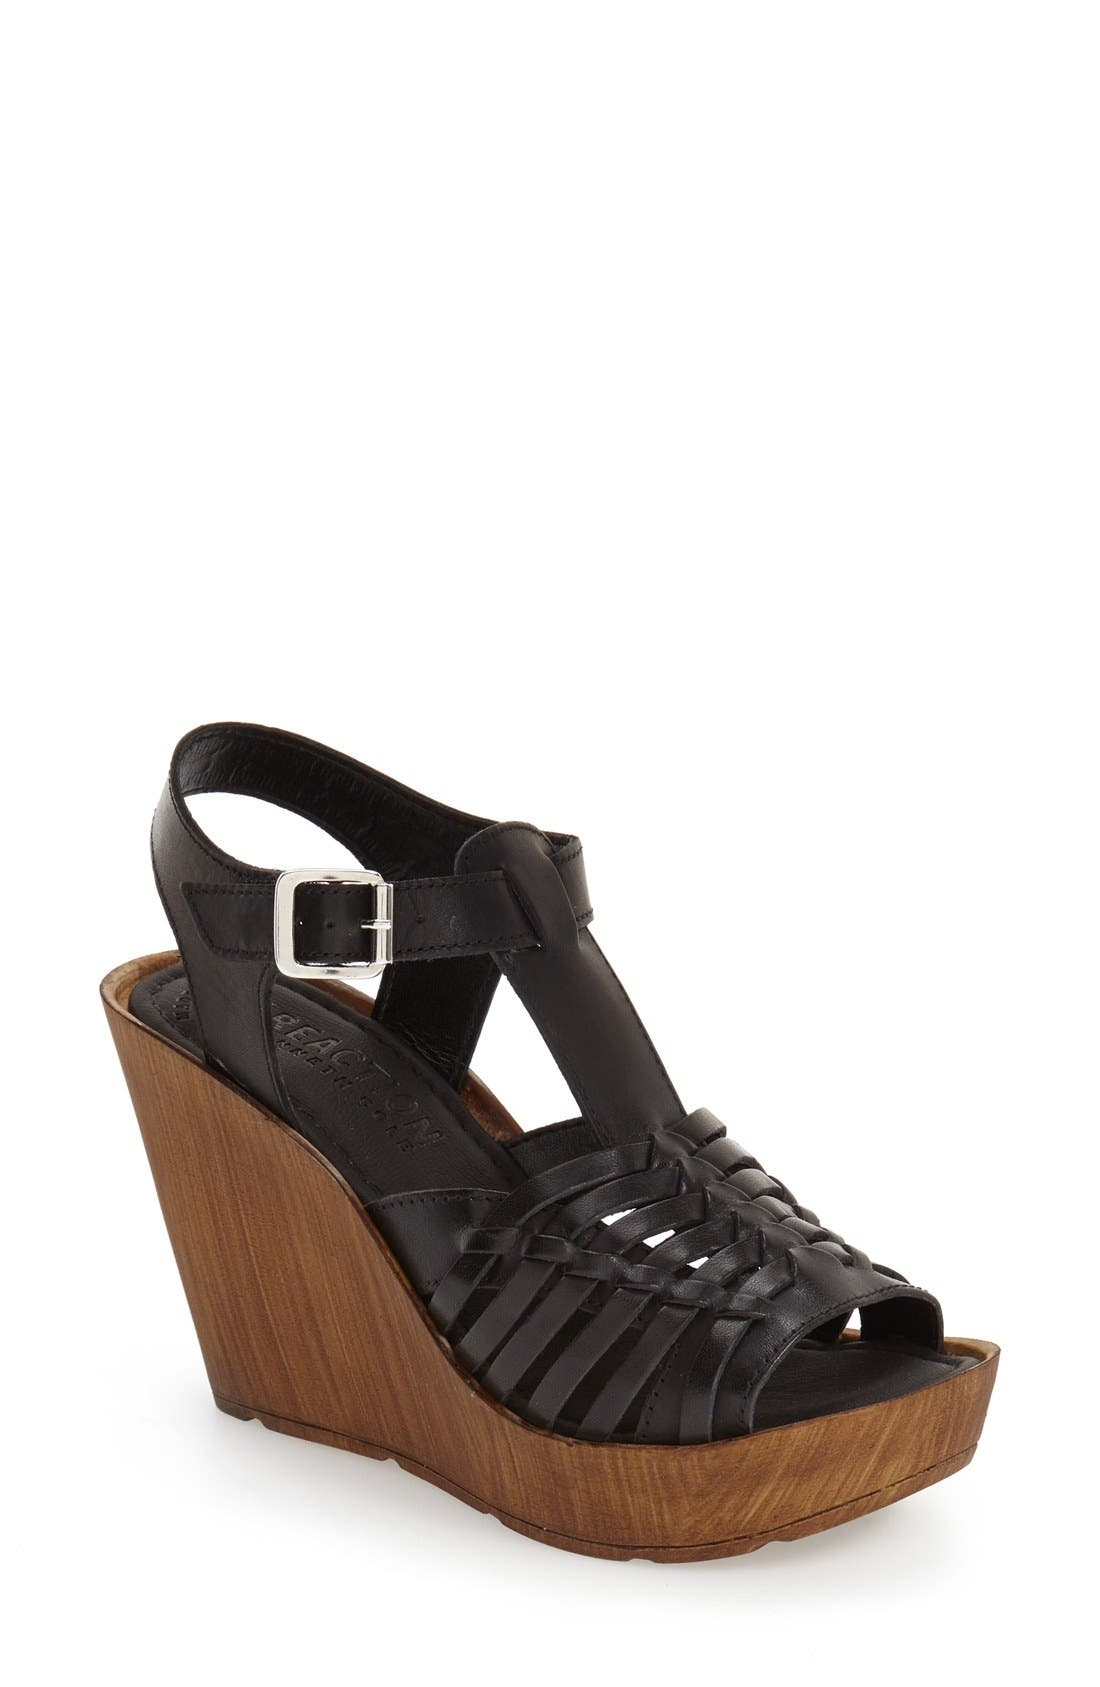 Alternate Image 1 Selected - Reaction Kenneth Cole 'Capellini' Wedge Sandal (Women)